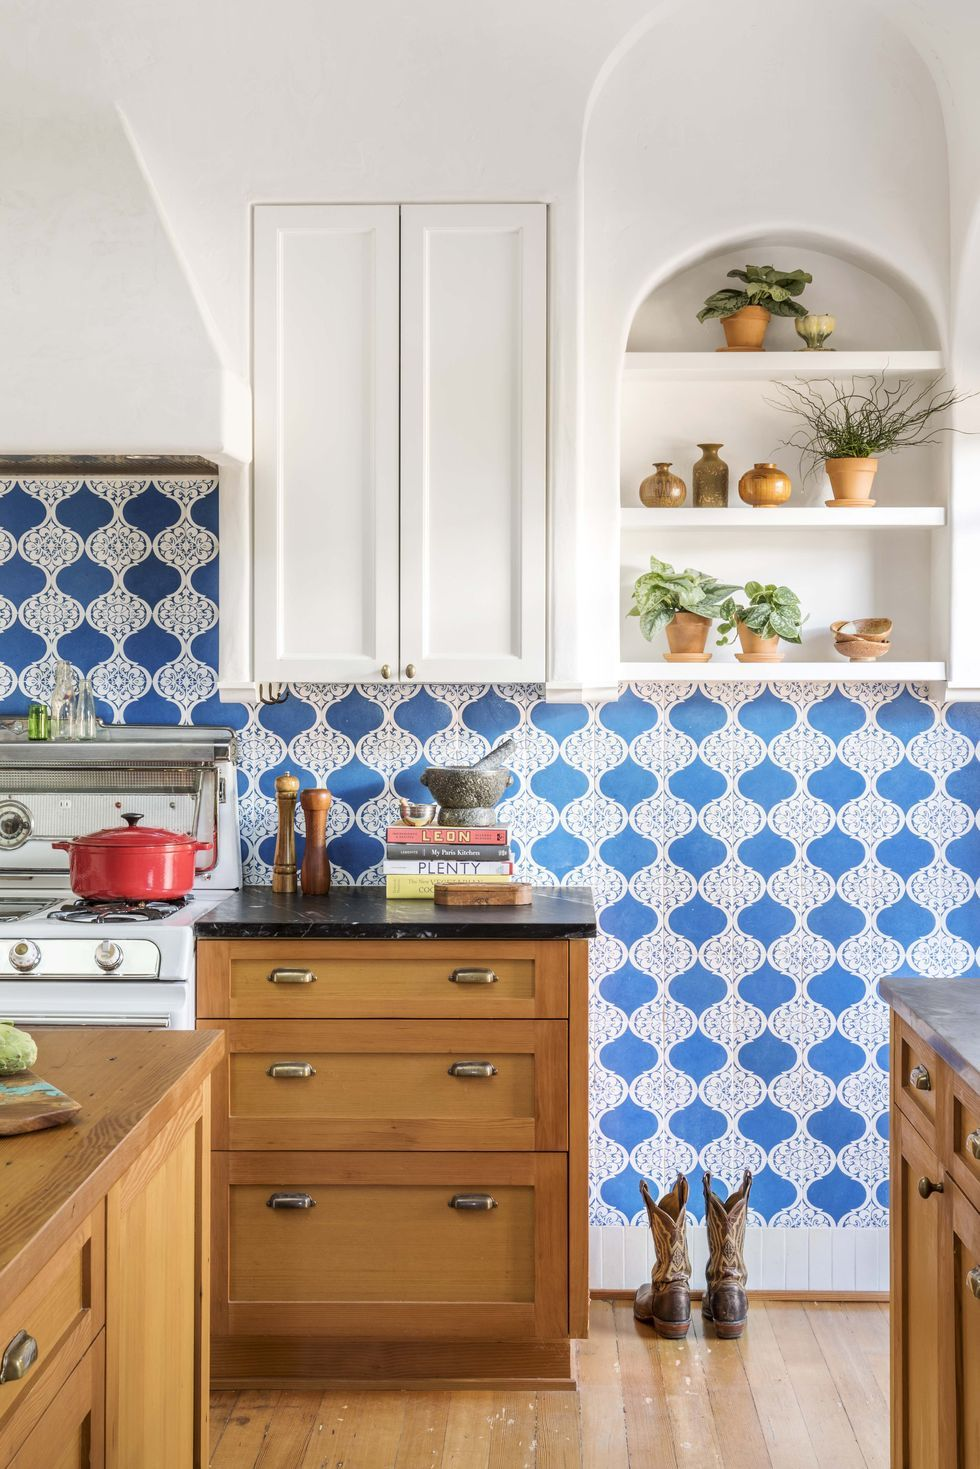 50 Best Kitchen Backsplash Ideas - Tile Designs for Kitchen ...